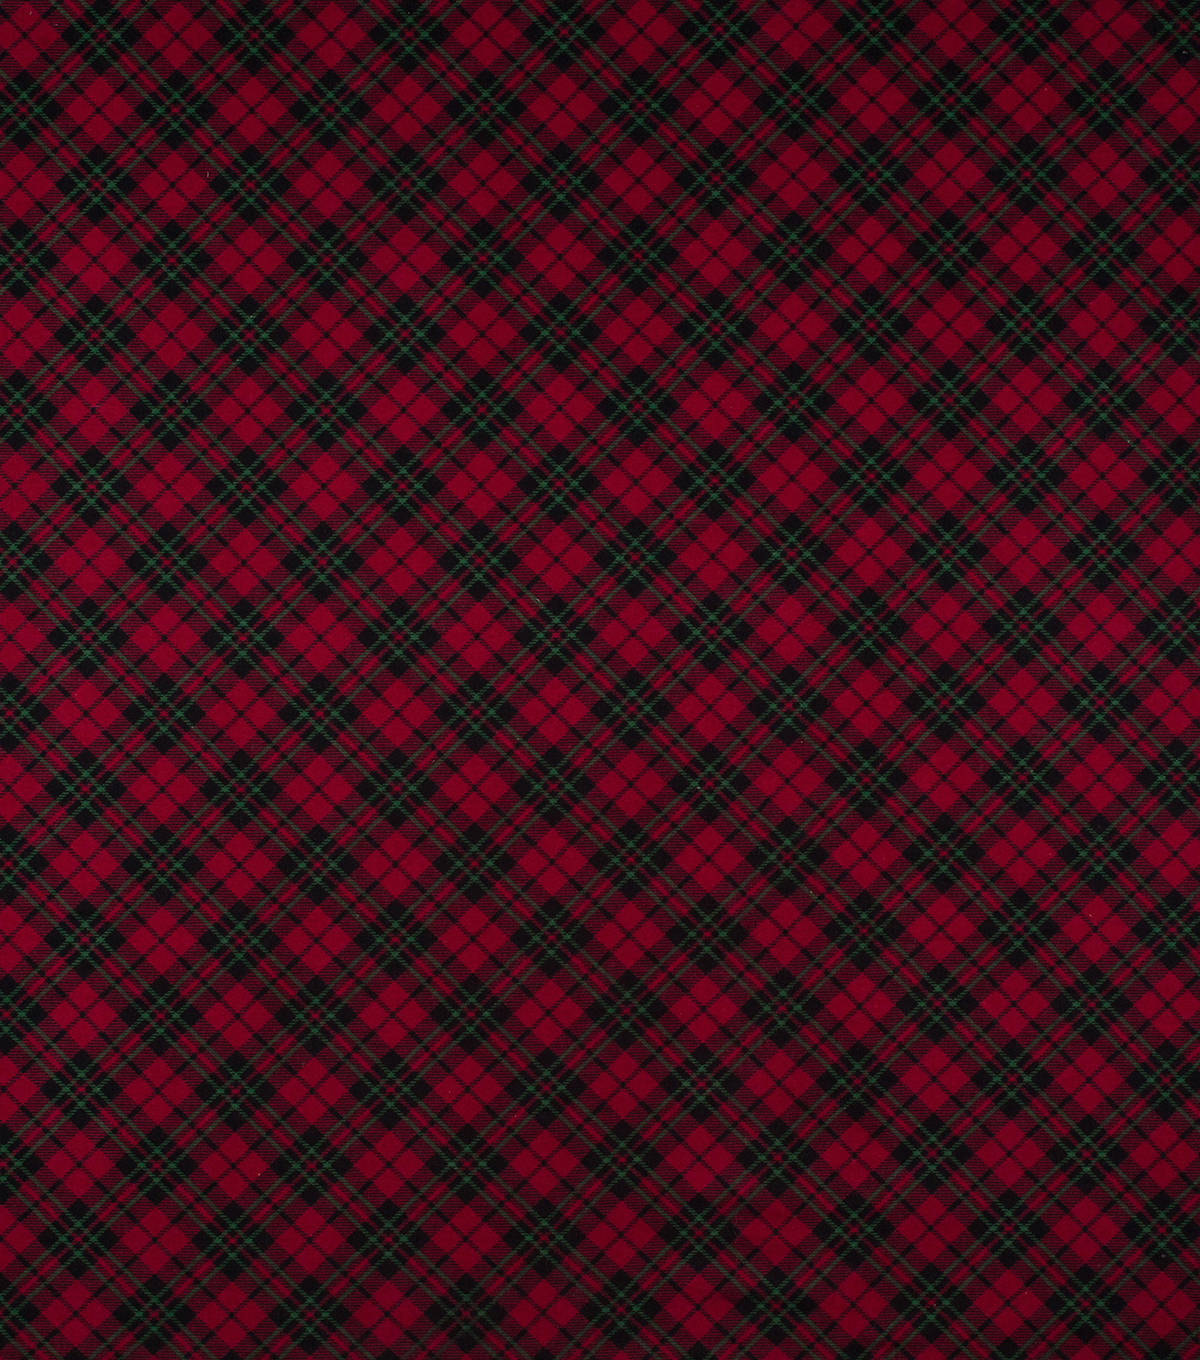 Super Snuggle Flannel Fabric-Black, Red & Green Plaid